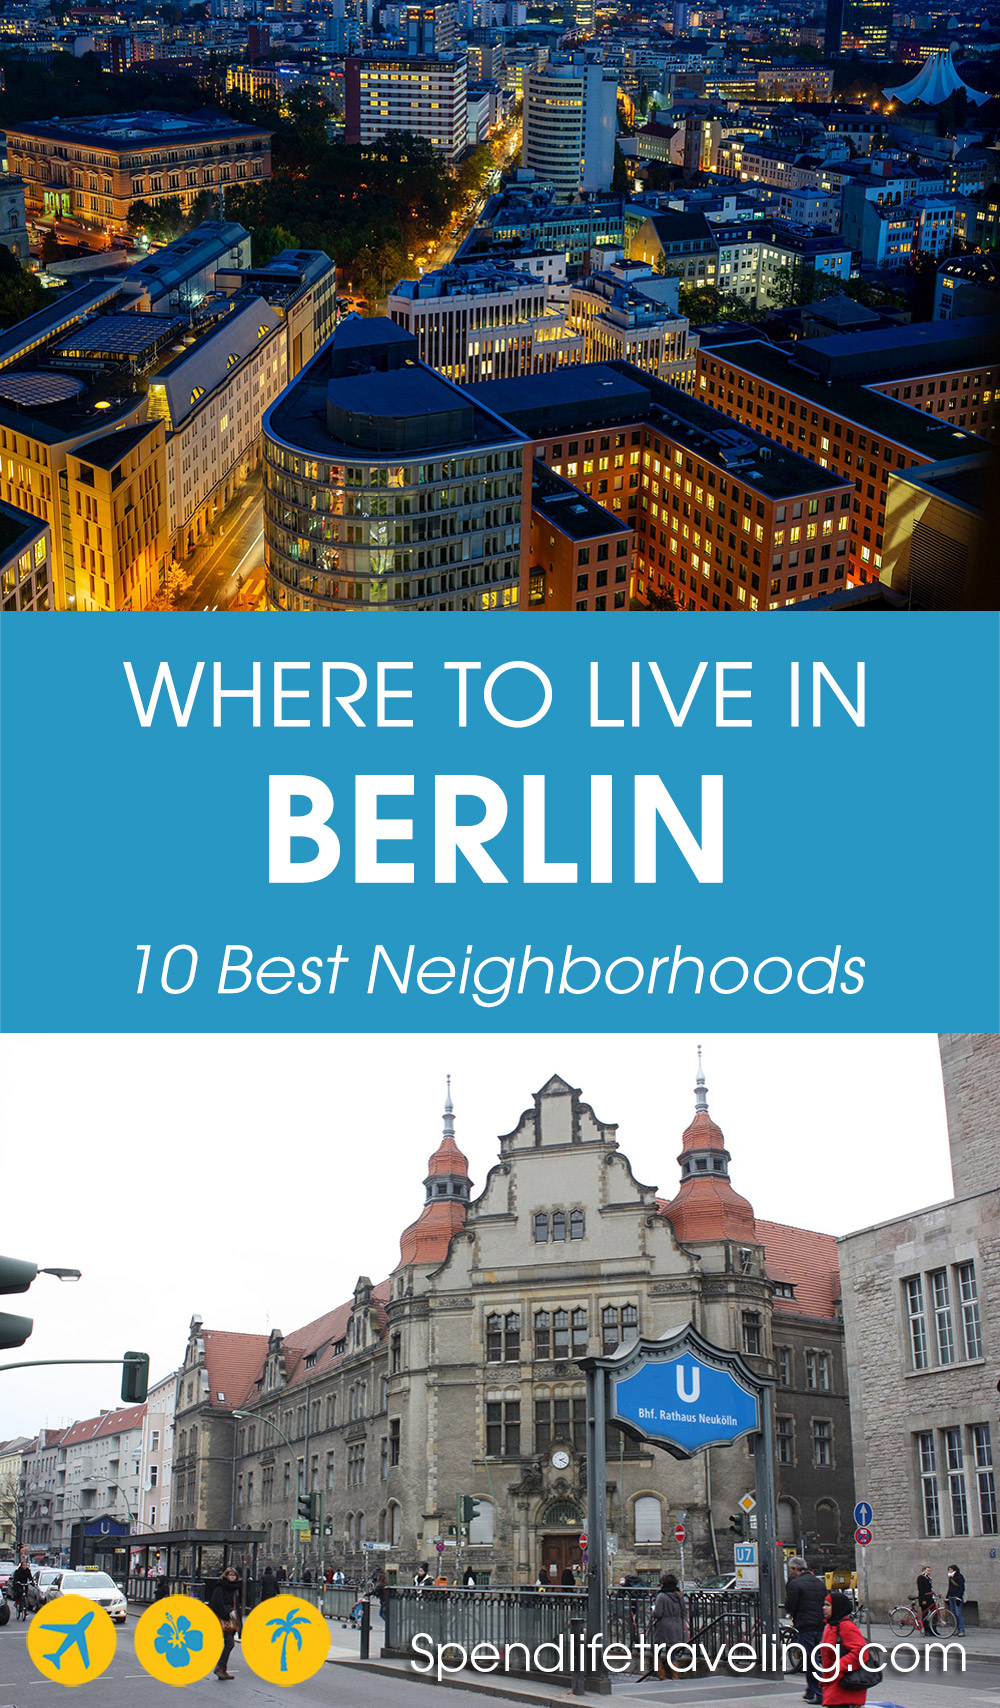 a list of the best beighborhoods in Berlin to live